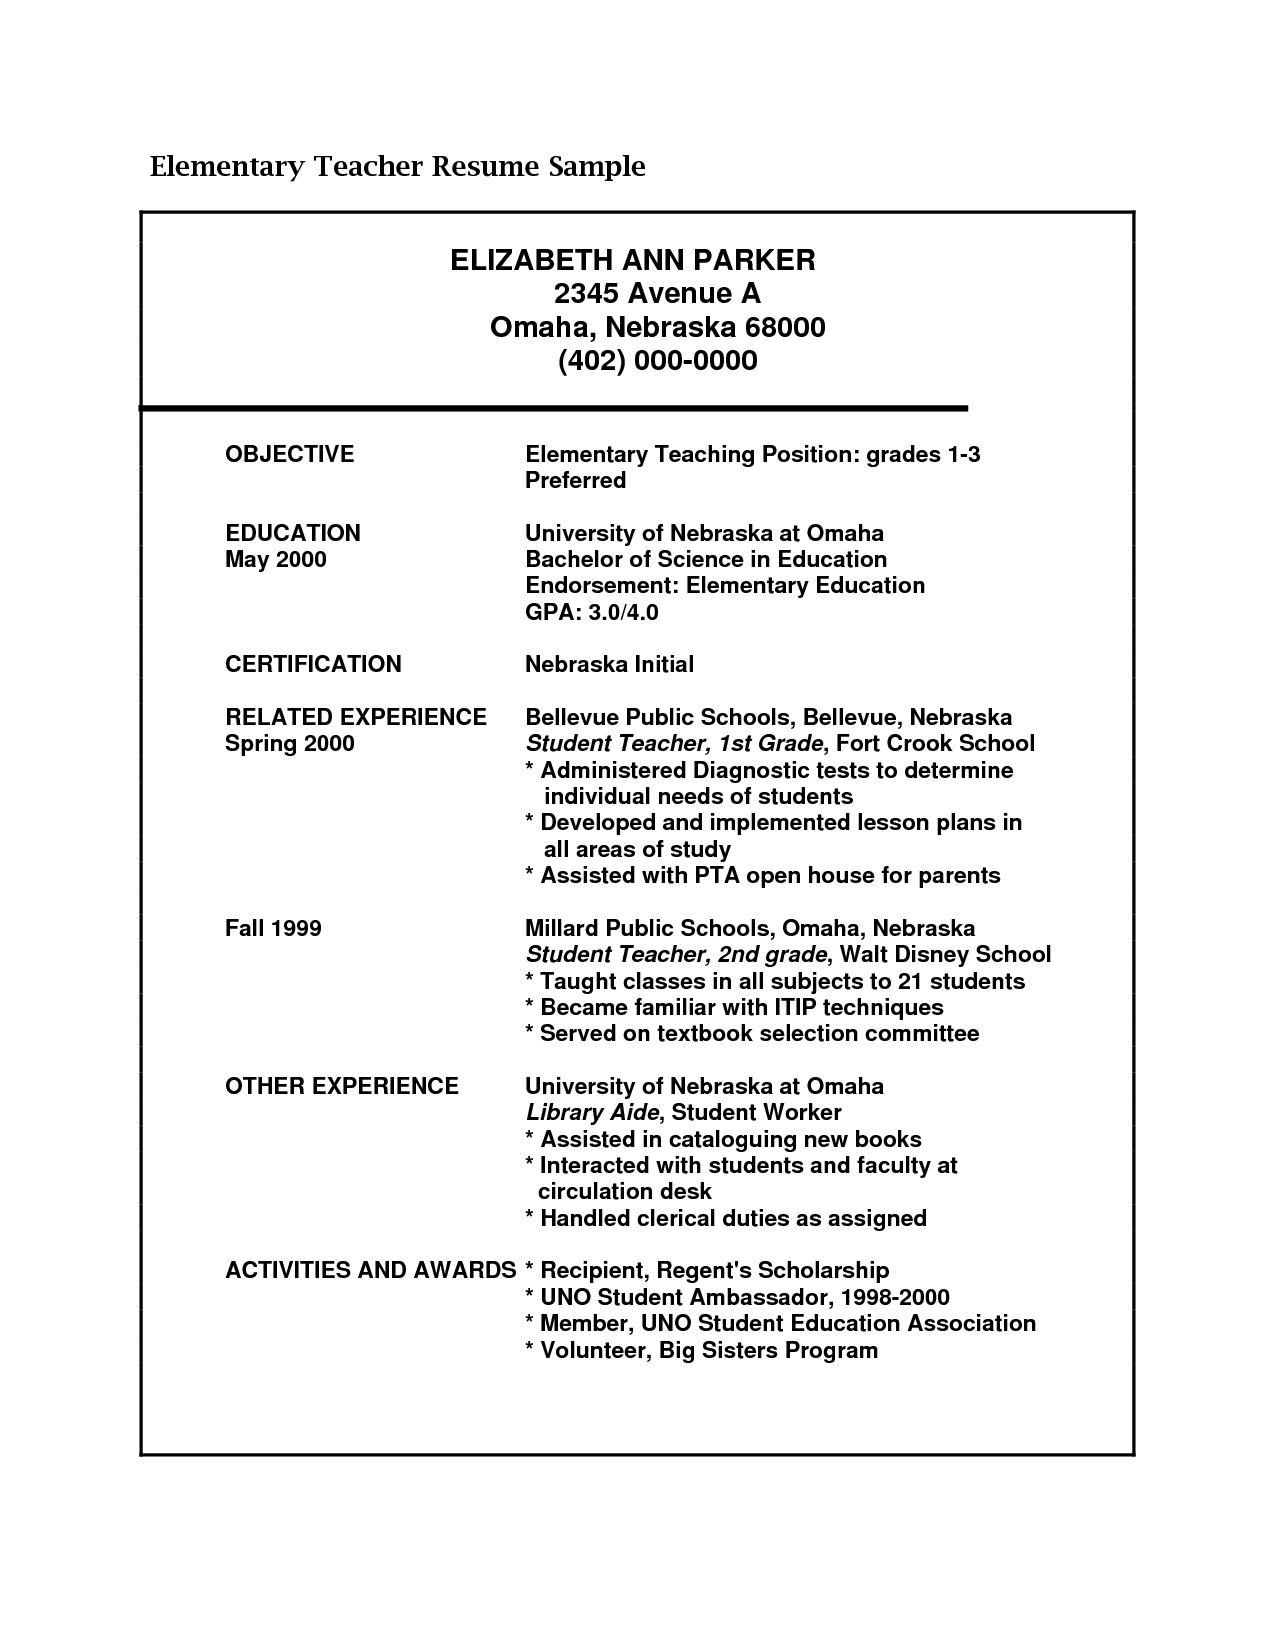 Resume Education Example Cool Science Teacher Resume Objective  Httpwwwresumecareer Design Ideas